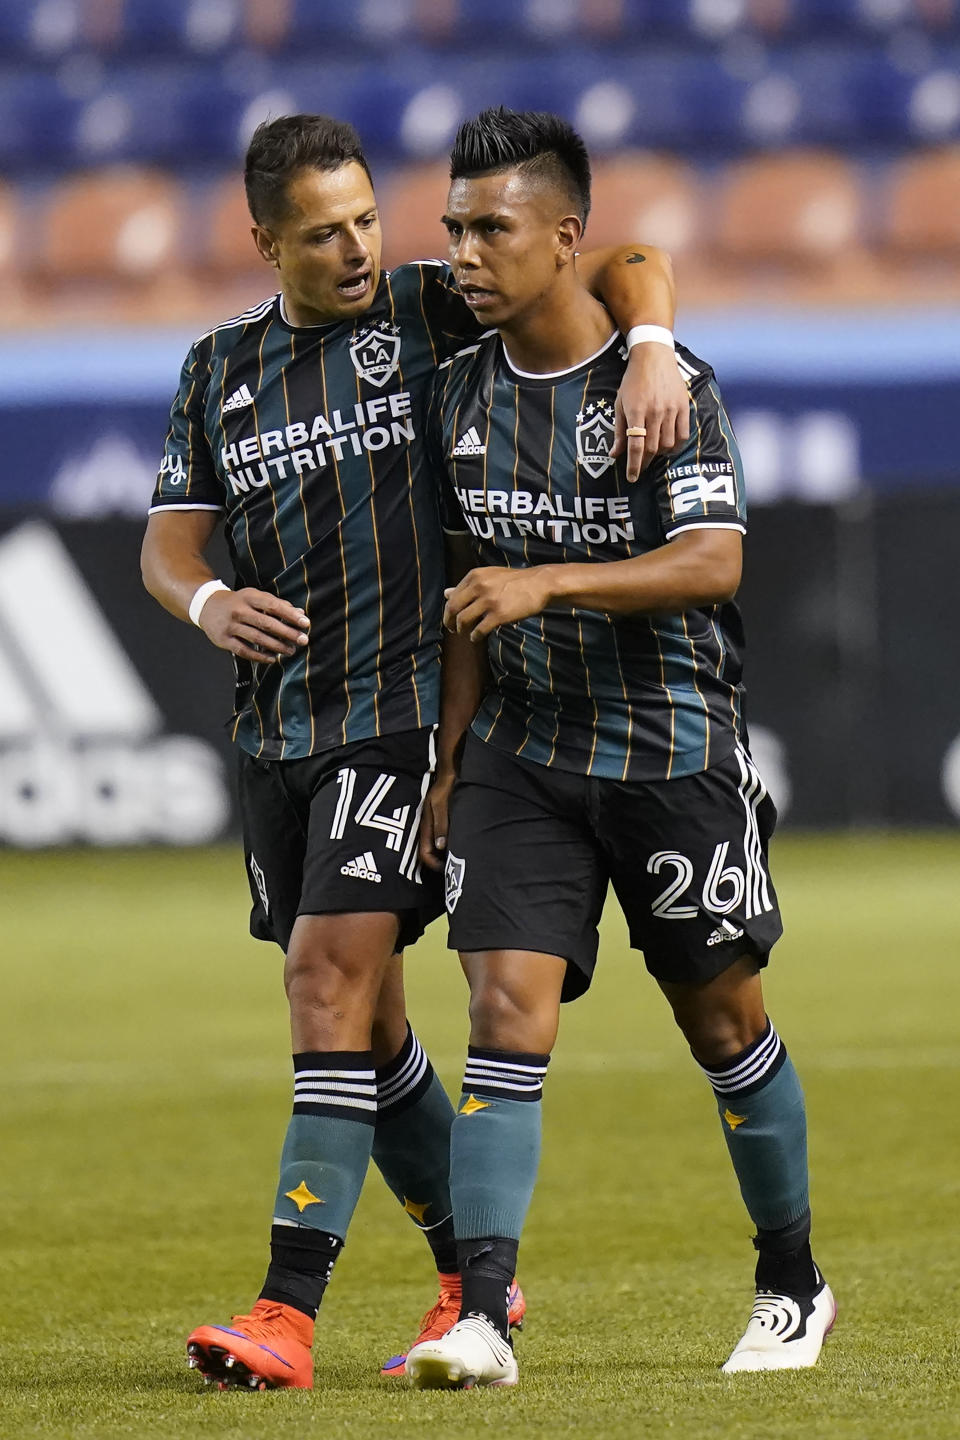 Los Angeles Galaxy's Efrain Alvarez (26) celebrates with Chichartio (14) after scoring against the Vancouver Whitecaps in the second half during an MLS soccer match Wednesday, June 23, 2021, in Sandy, Utah. (AP Photo/Rick Bowmer)